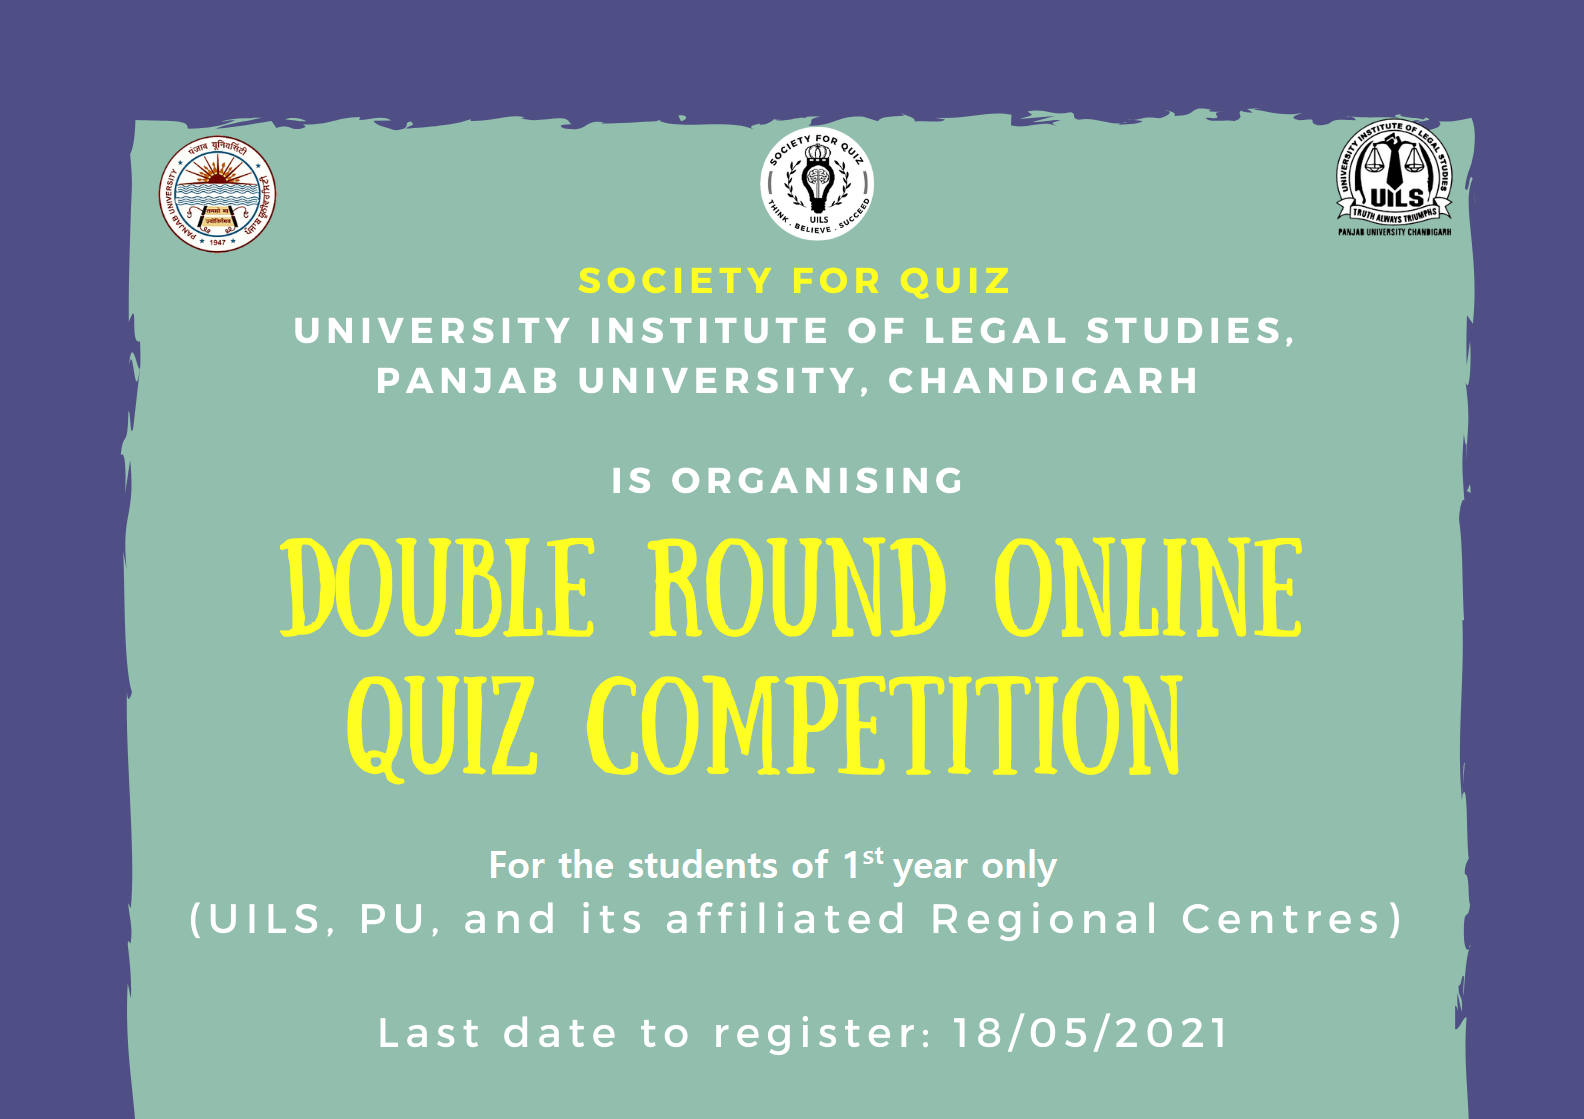 Double Round Online Quiz Competition